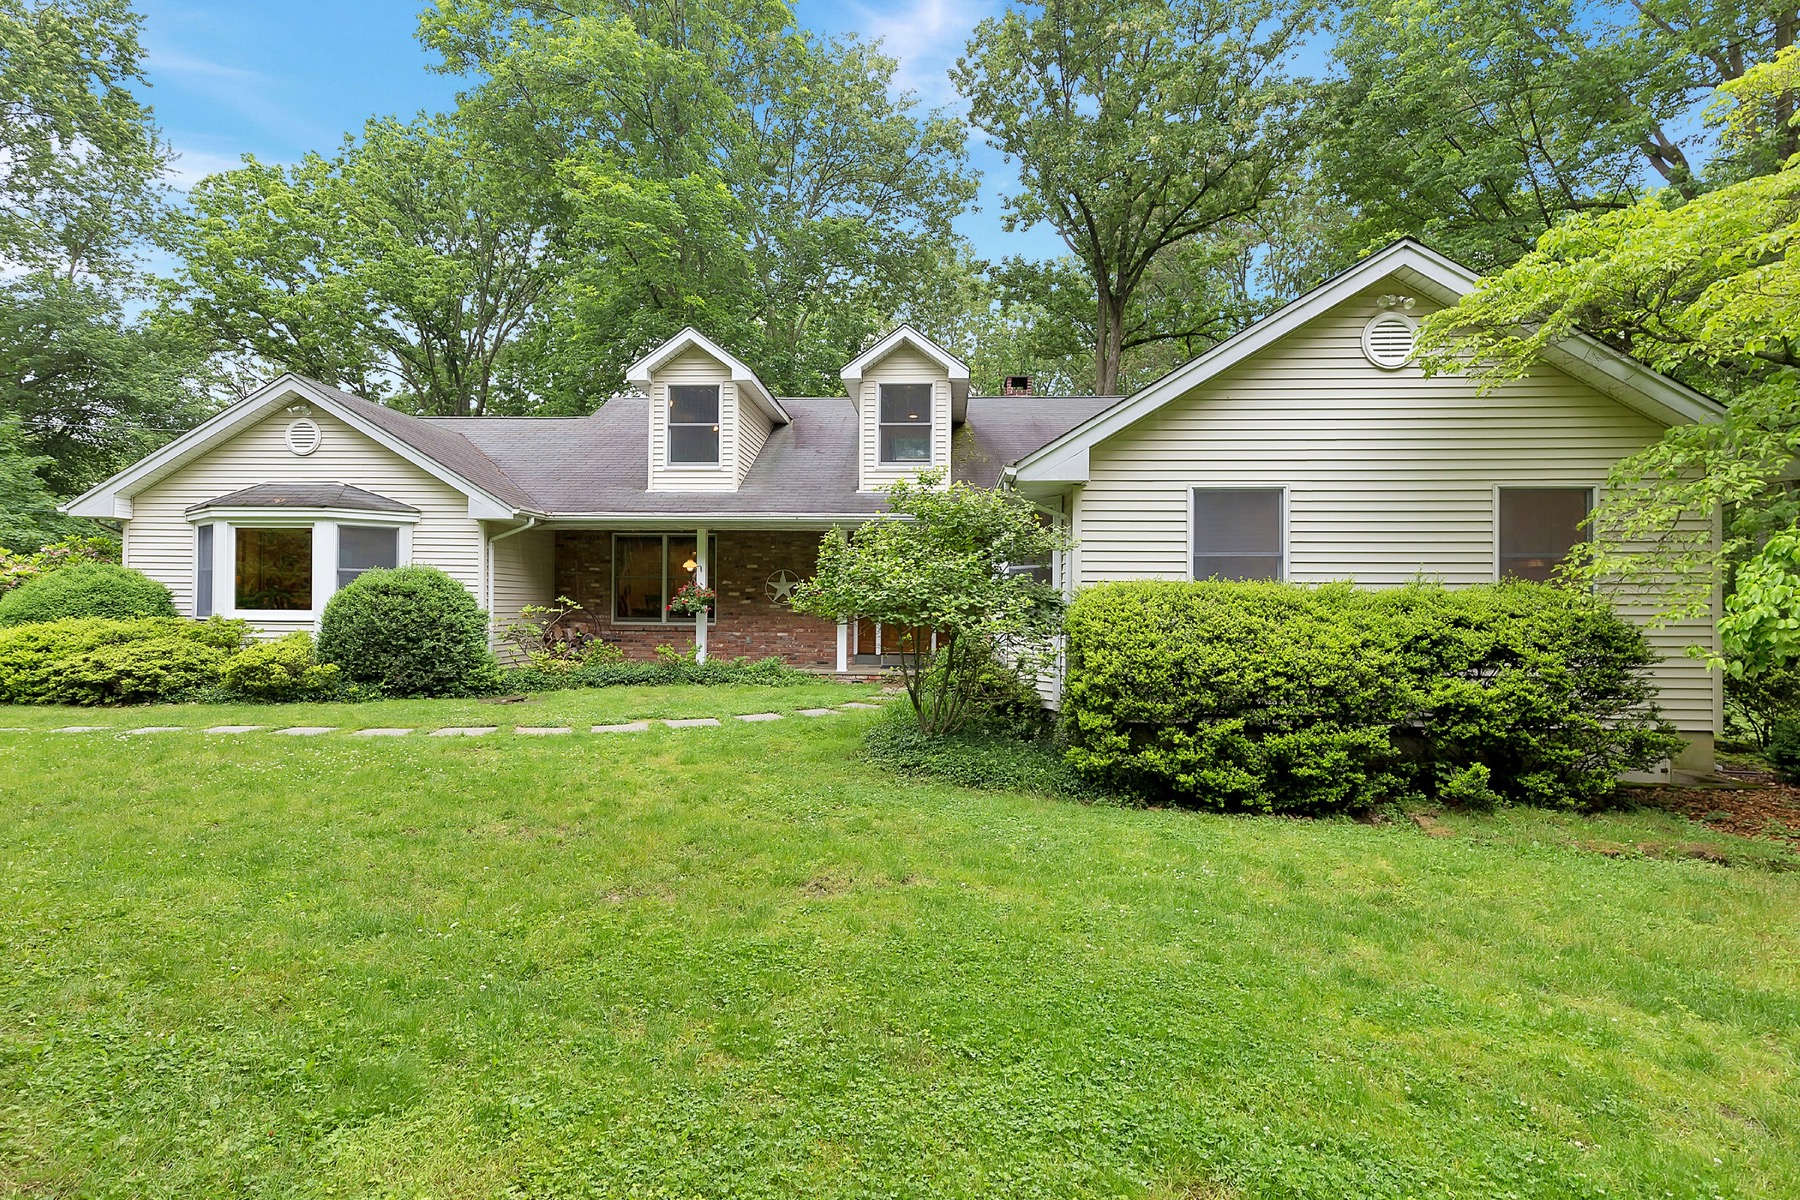 Single Family Home for Sale at 24 Clover Hill Lane Colts Neck, New Jersey, 07722 United States